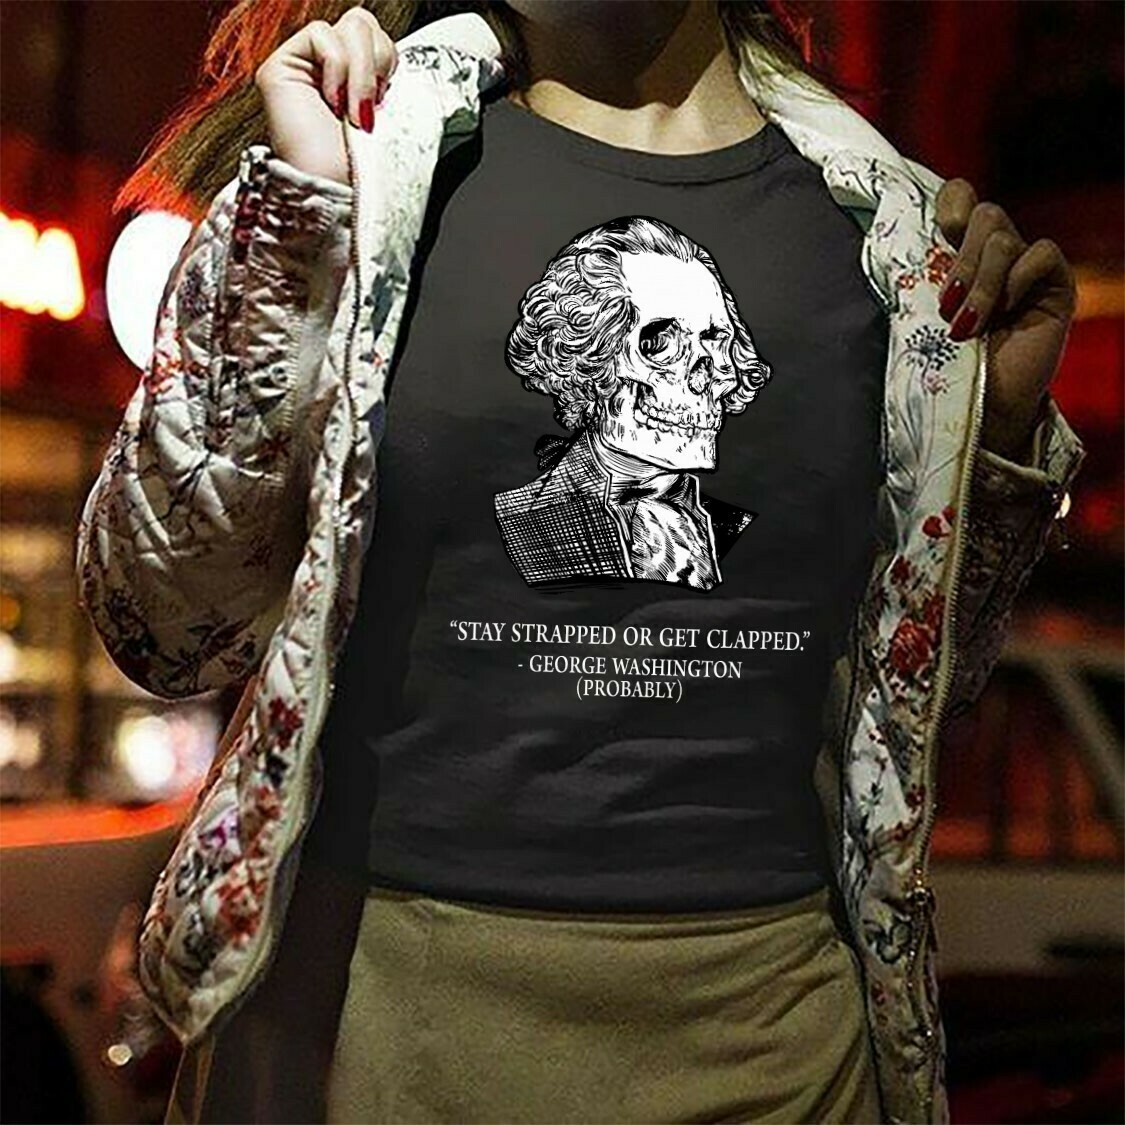 Stay strapped or get clapped George Washington skull Head  T-Shirt Hoodie Sweatshirt Sweater Tee Kids Youth Gifts Jolly Family Gifts